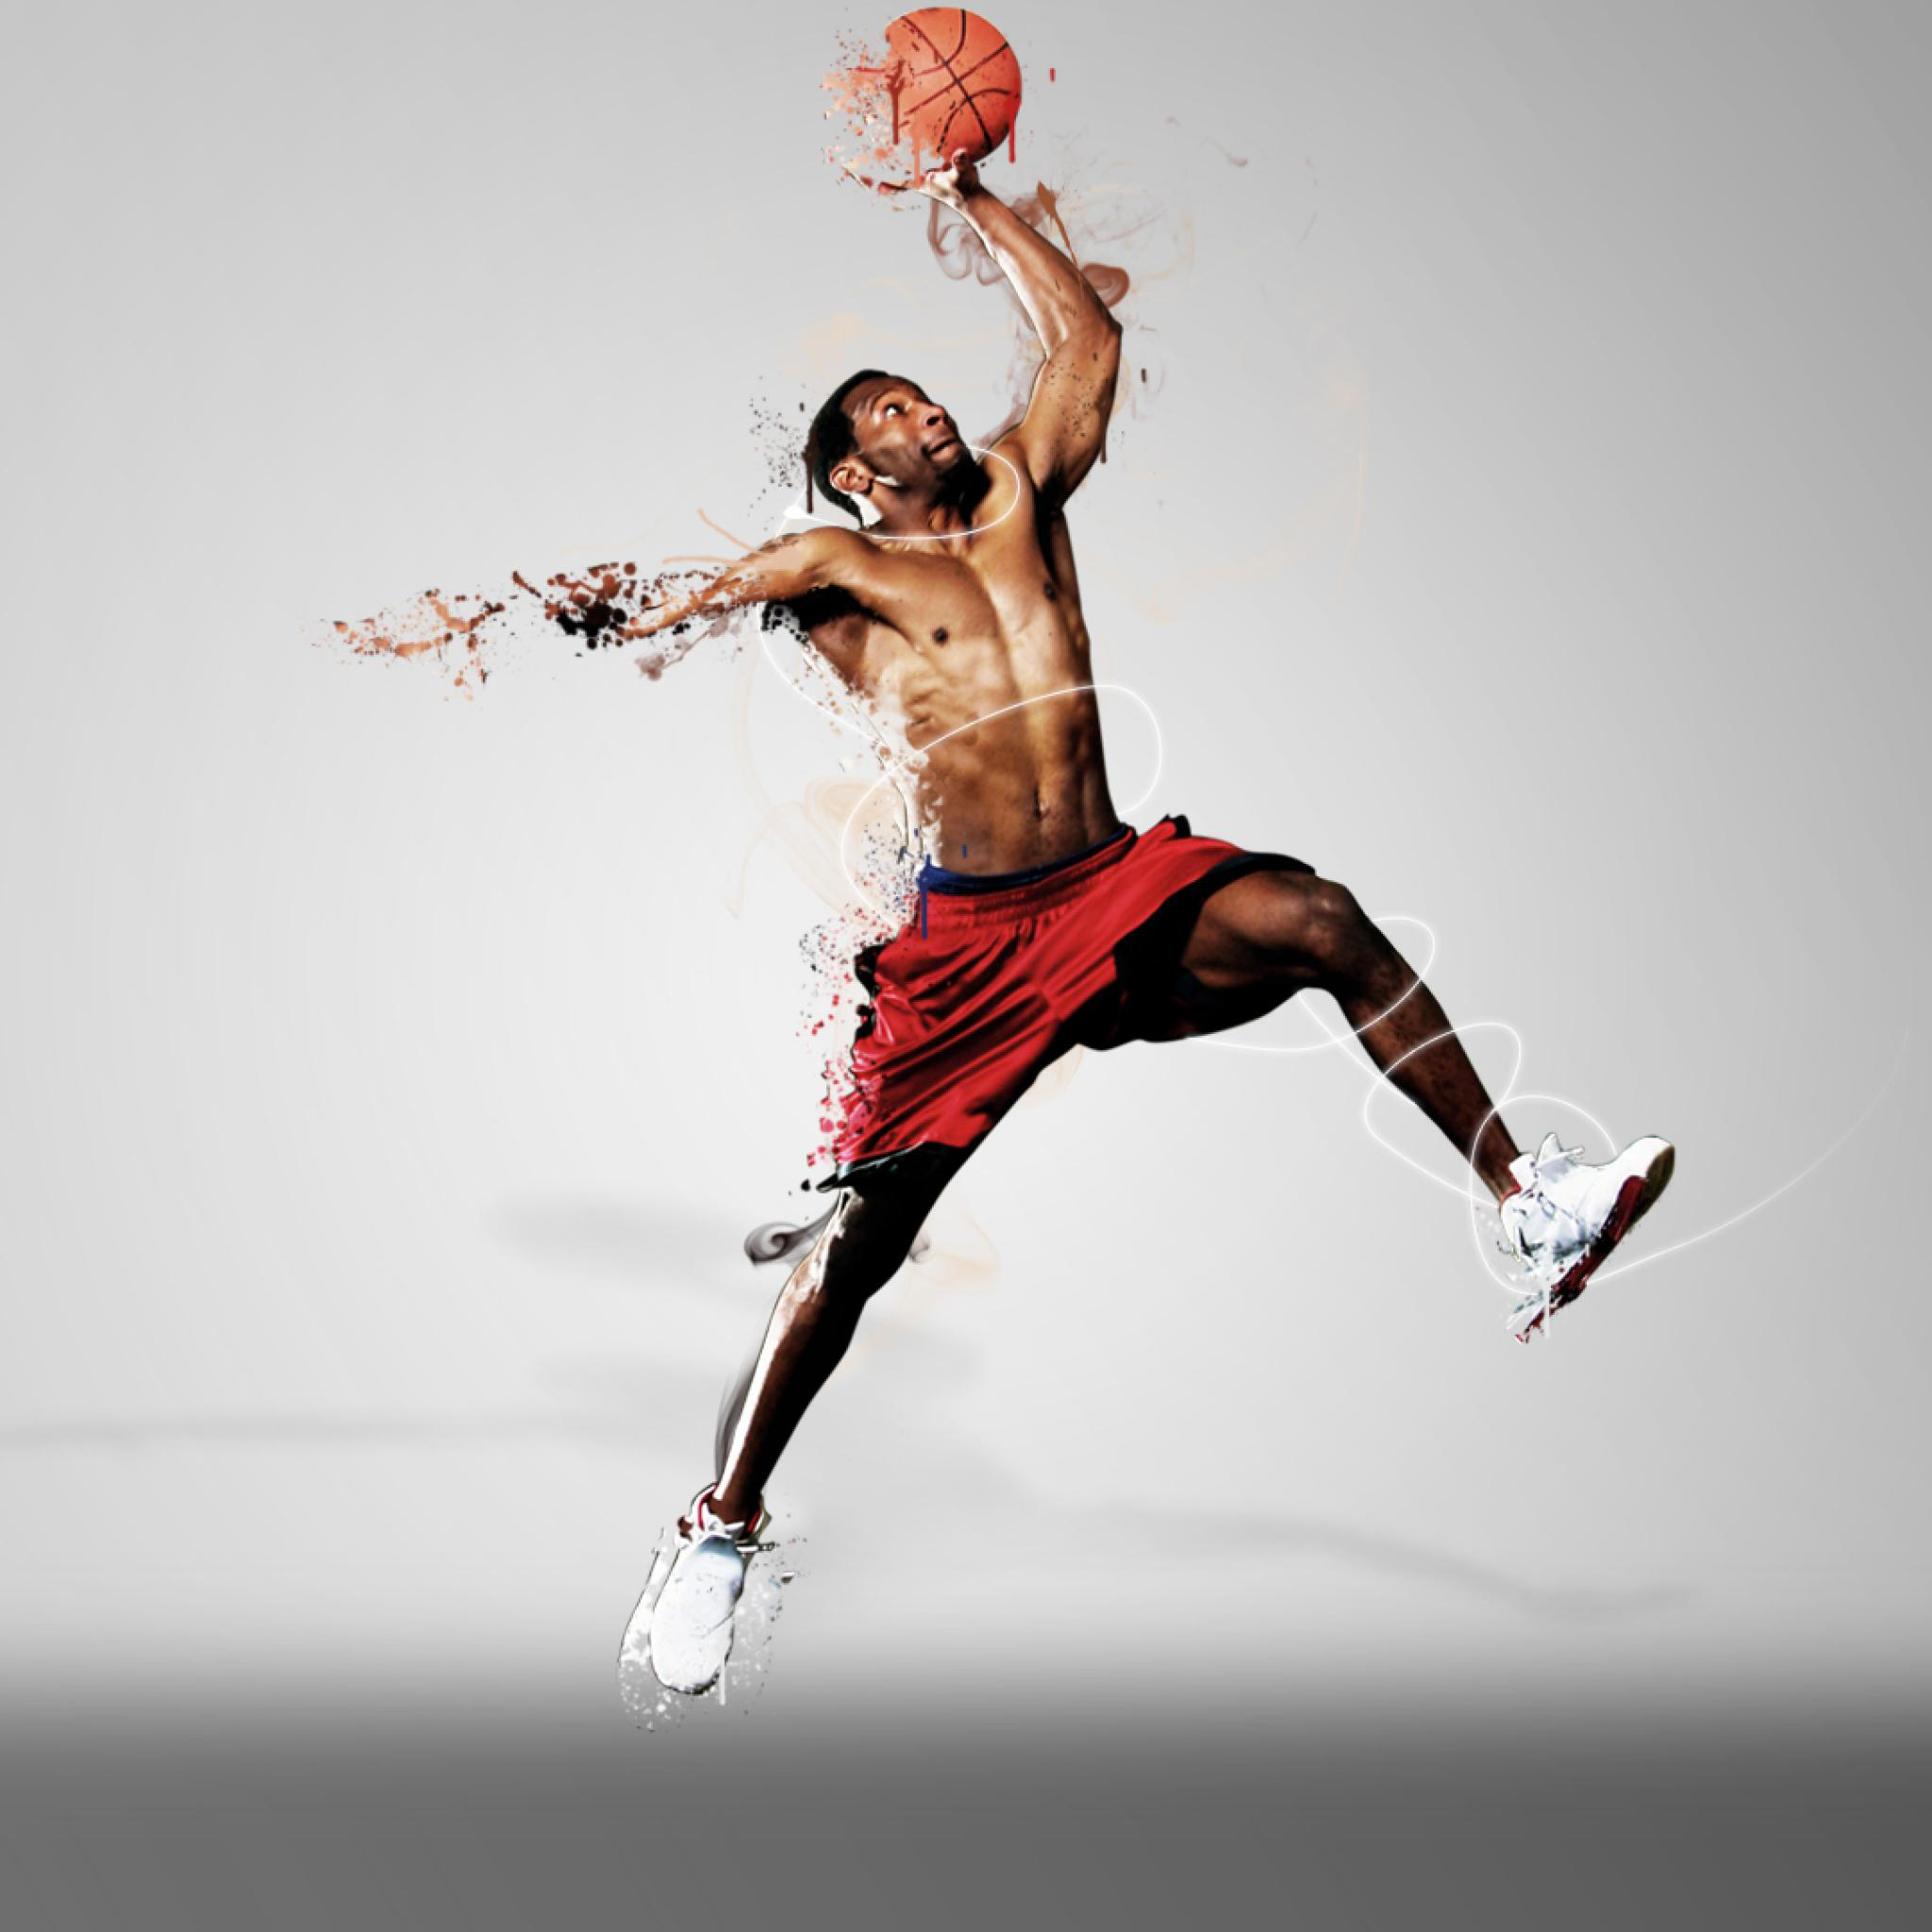 BasketBall 3Wallpapers iPad Retina BasketBall   iPad Retina